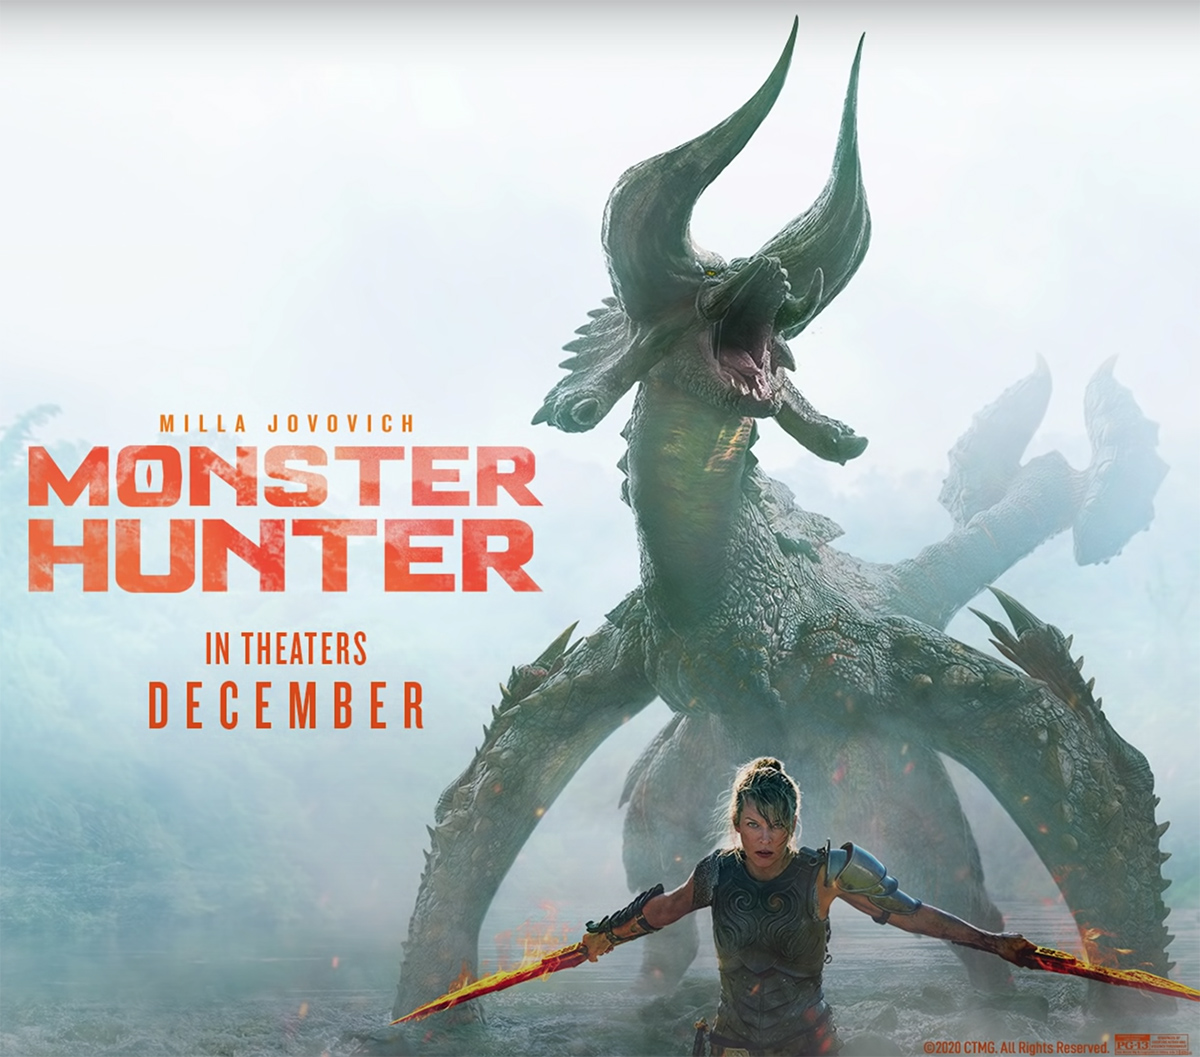 The first full trailer for the Monster Hunter movie is here